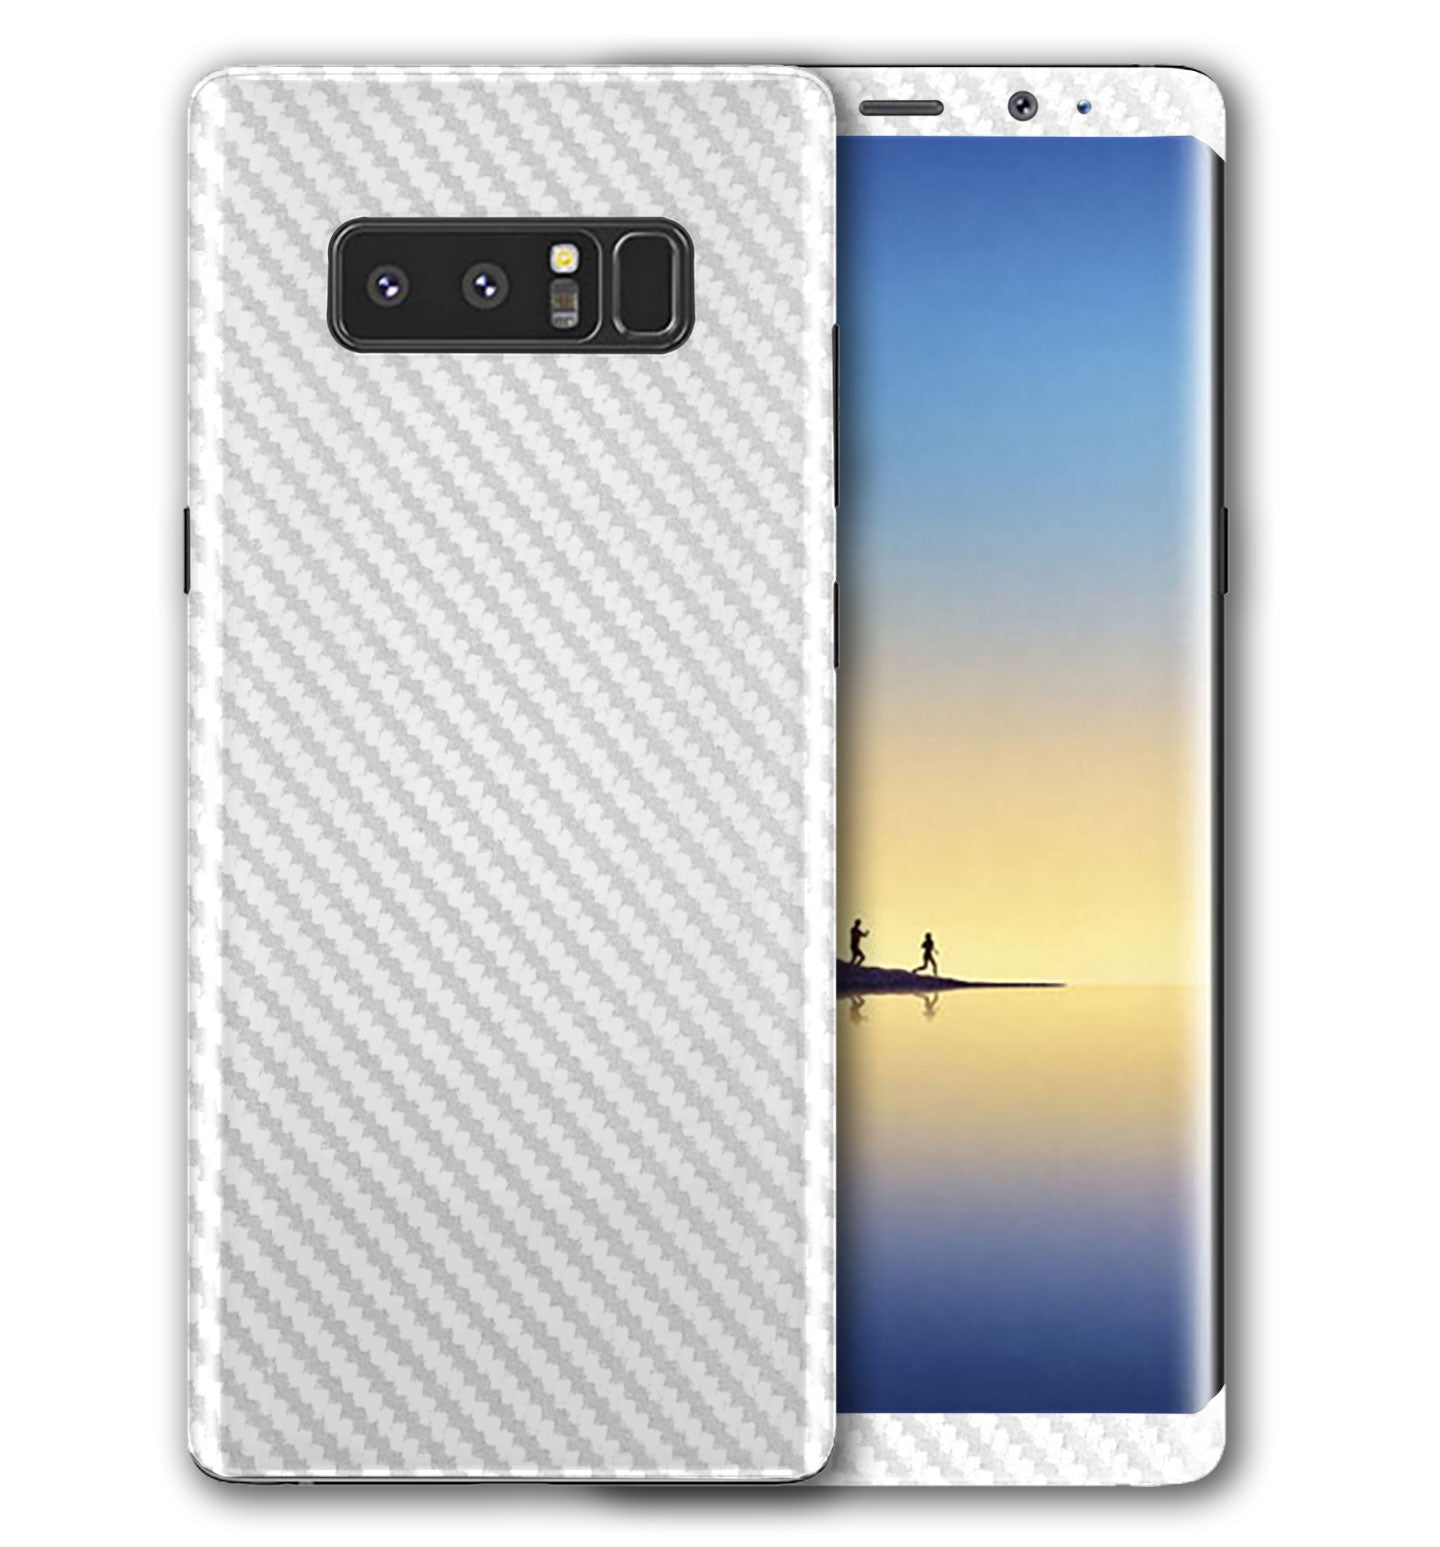 Galaxy Note 8 Phone Skins Carbon